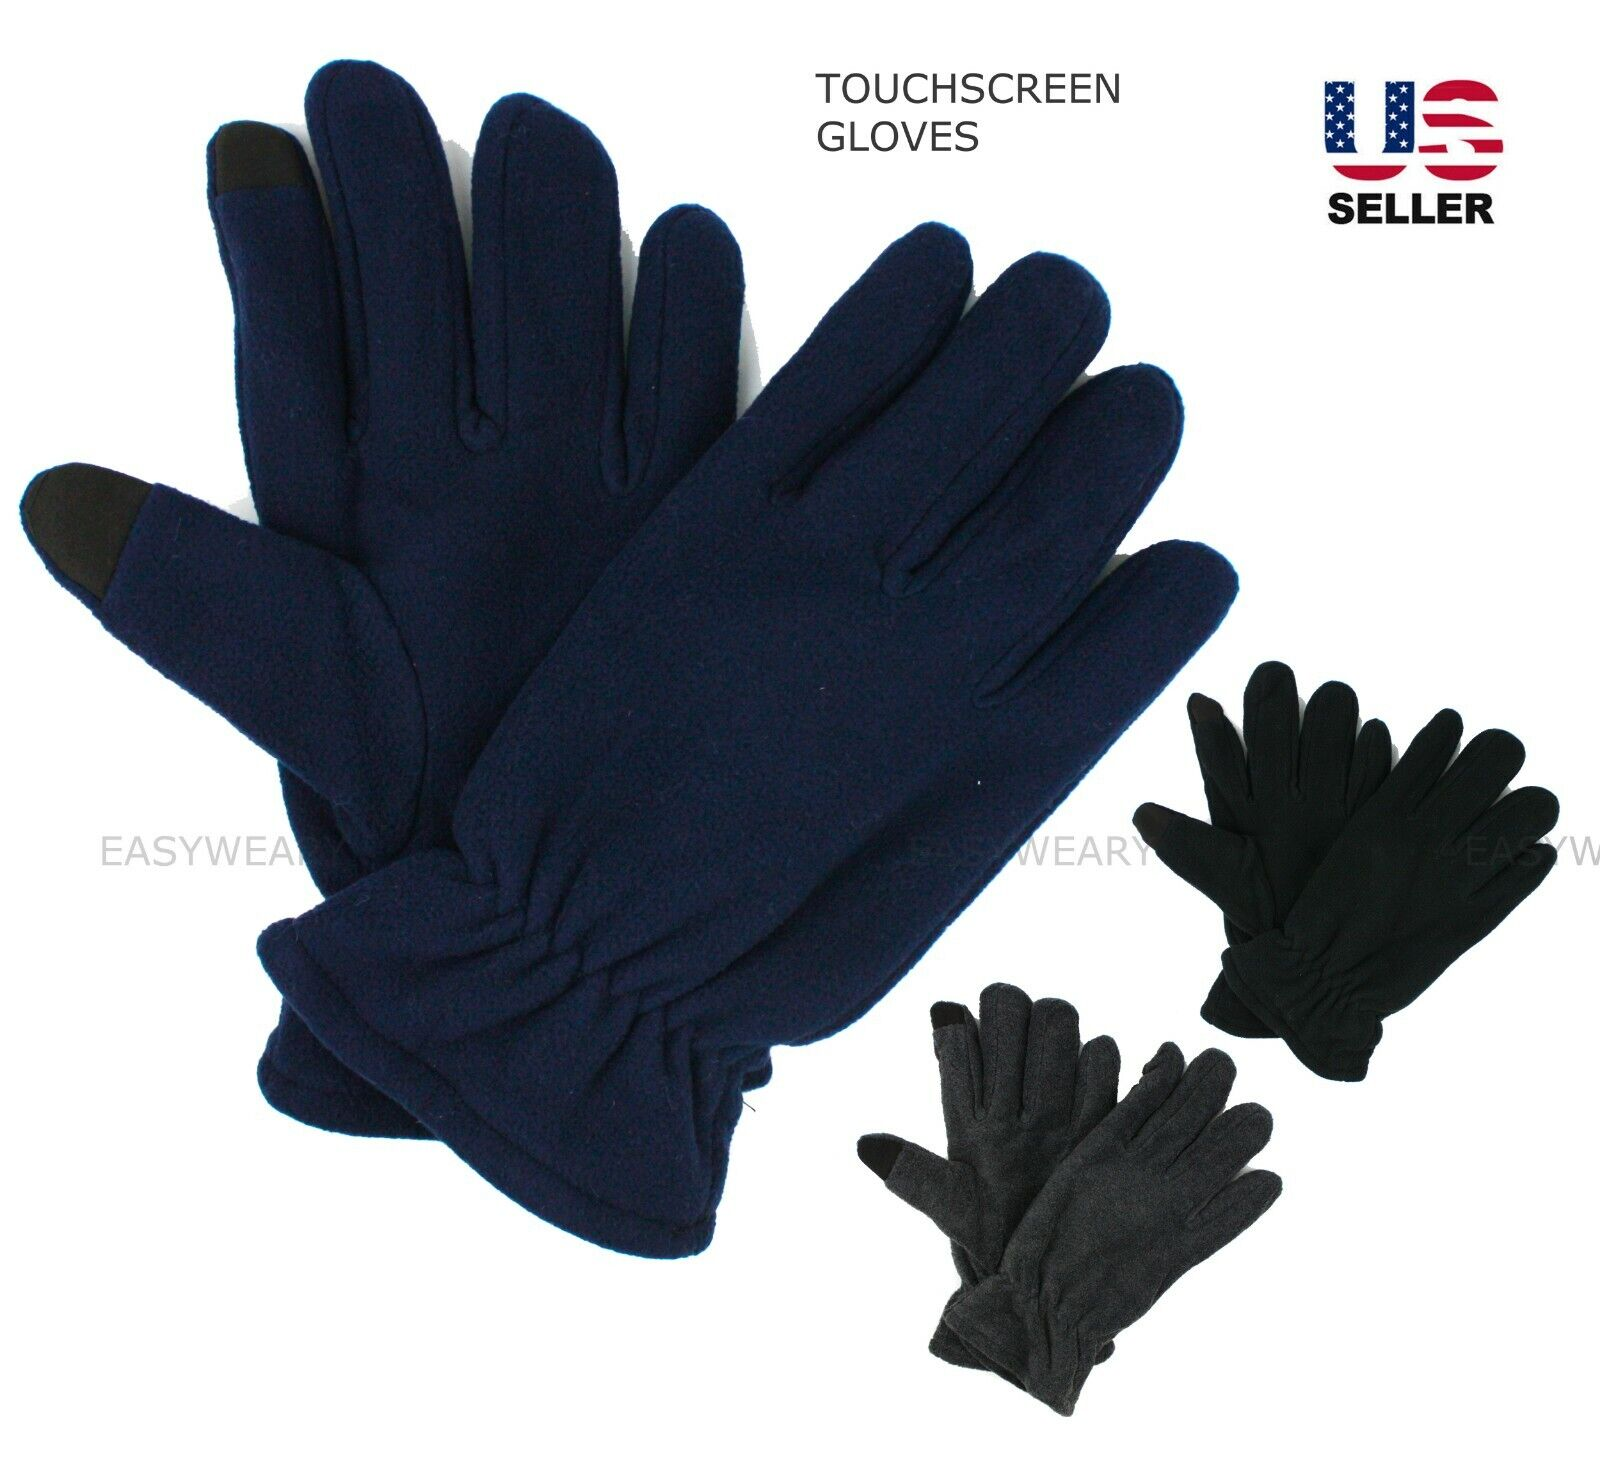 Mens Womens Winter Thermal Fleece Gloves Touchscreen Mittens Warm Soft Ski Snow Clothing, Shoes & Accessories